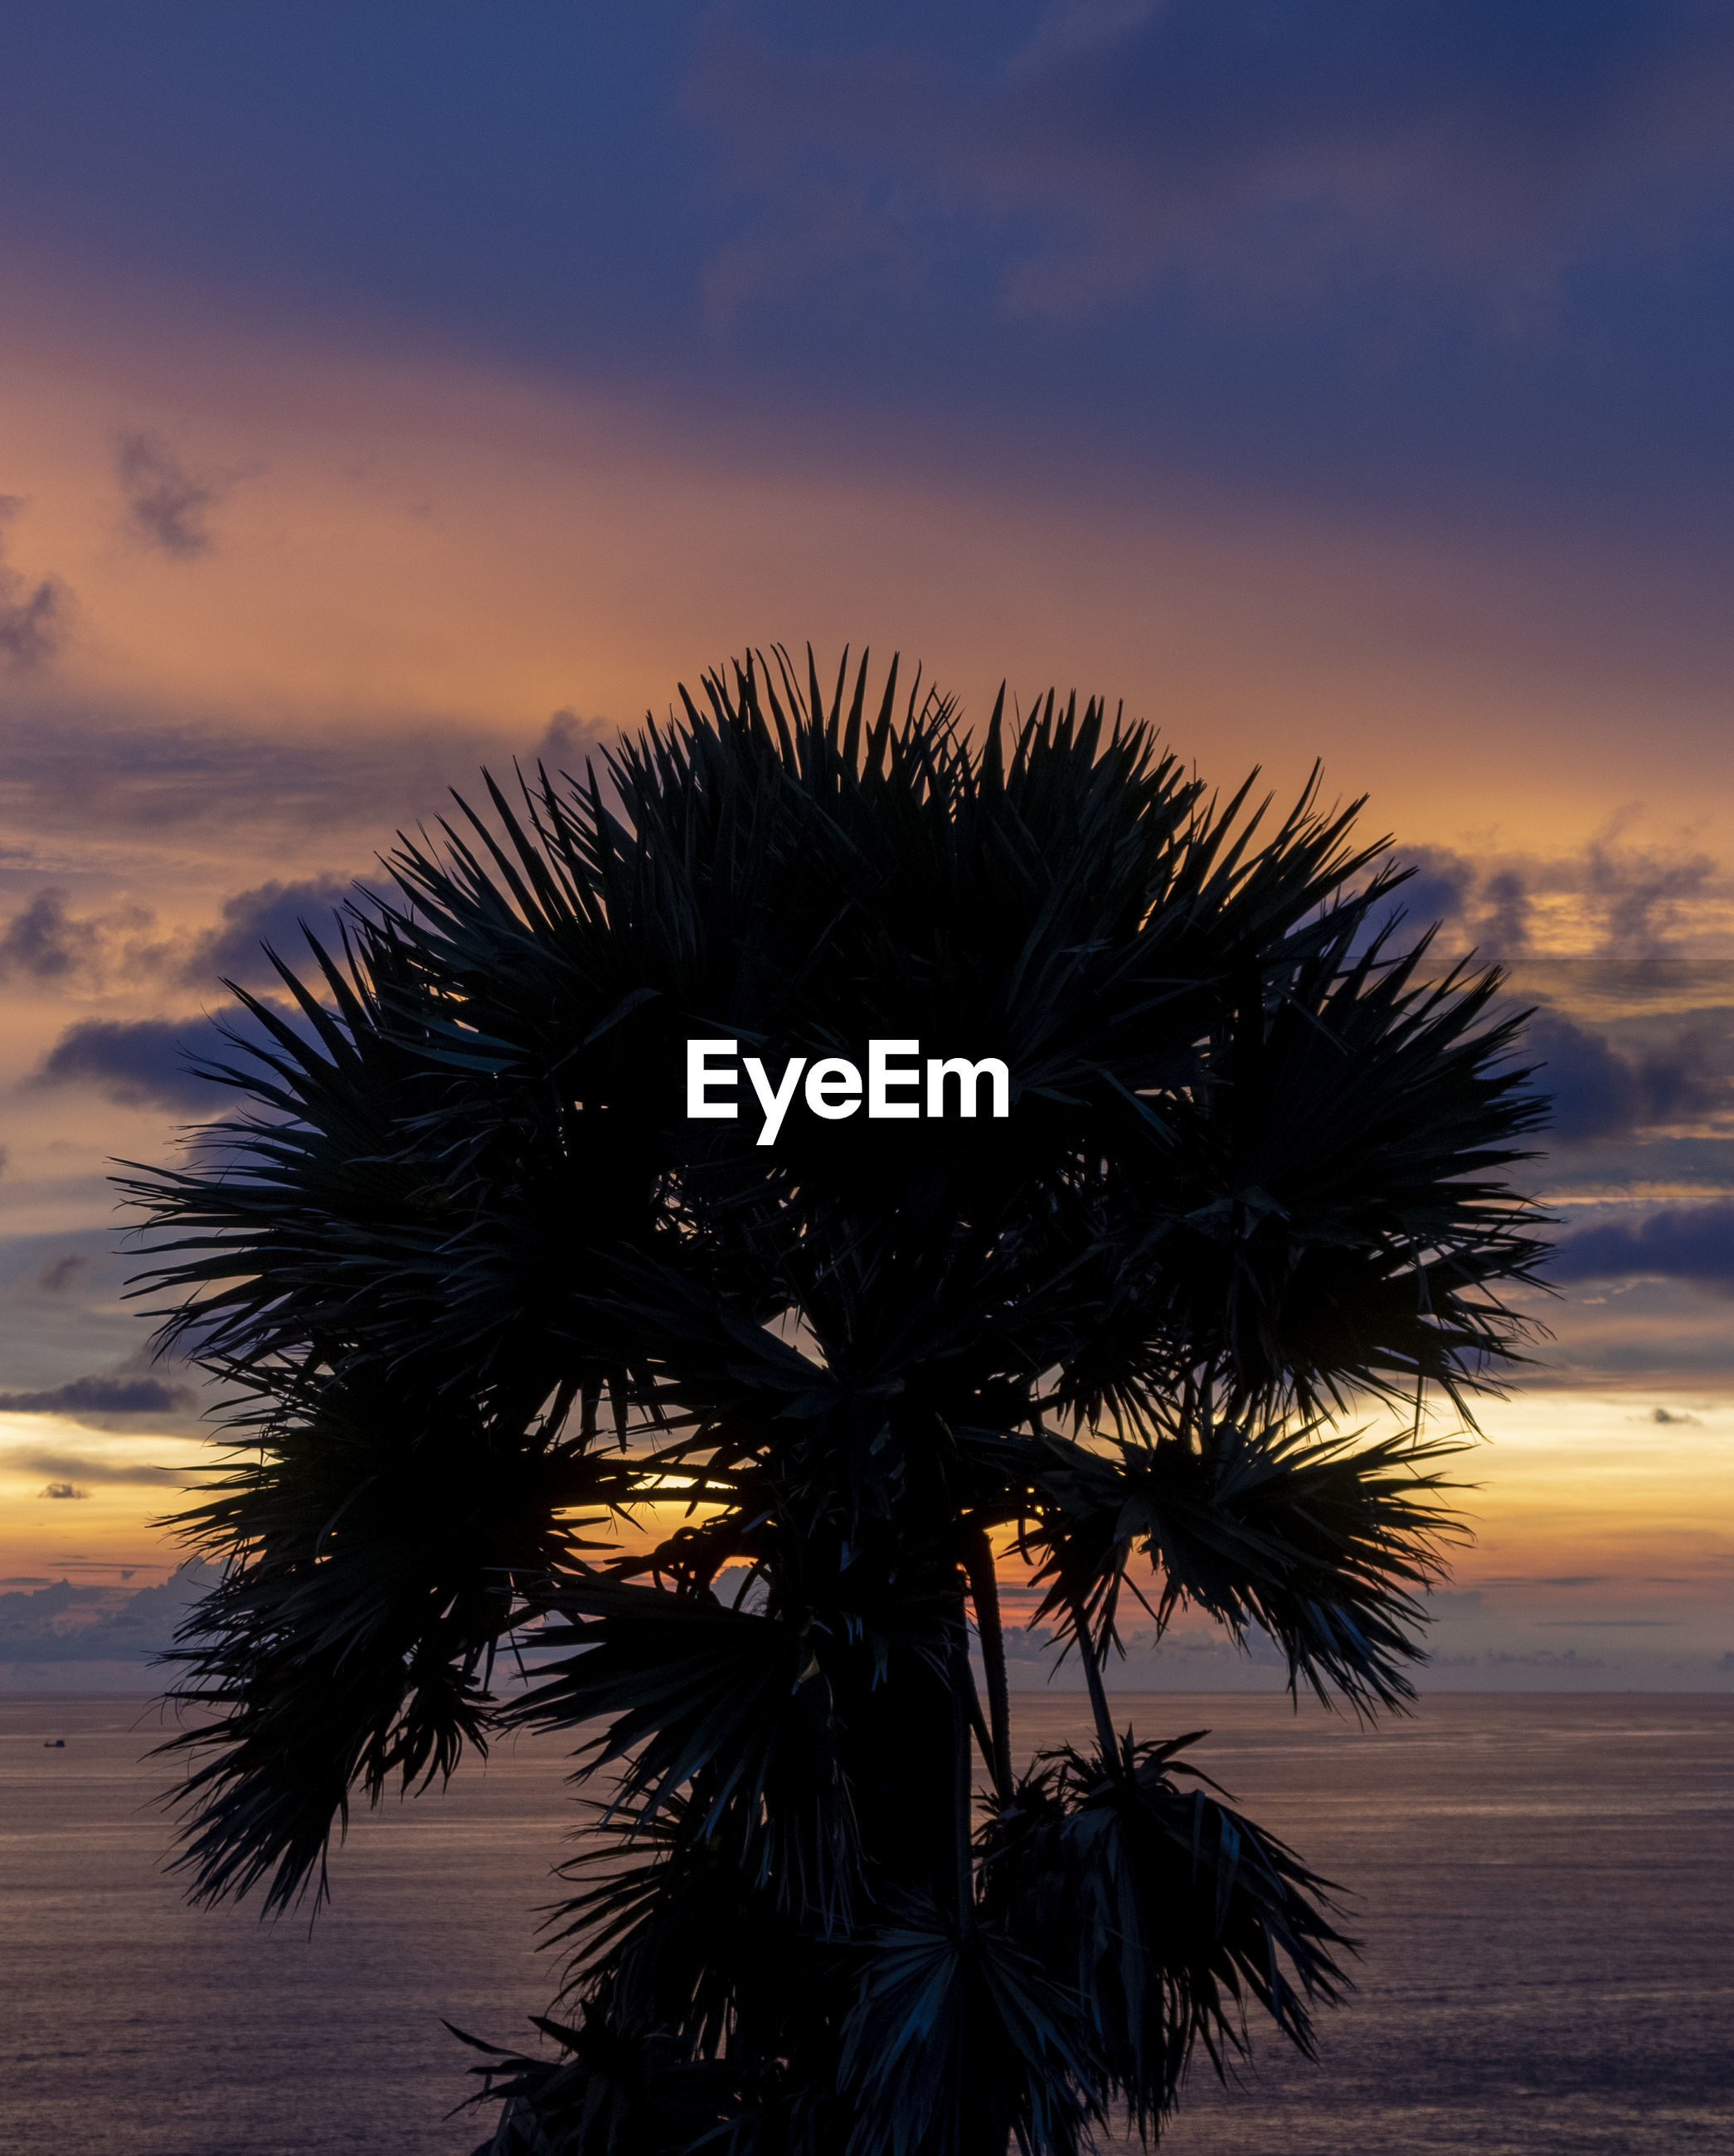 SILHOUETTE PALM TREE AGAINST SKY AT SUNSET